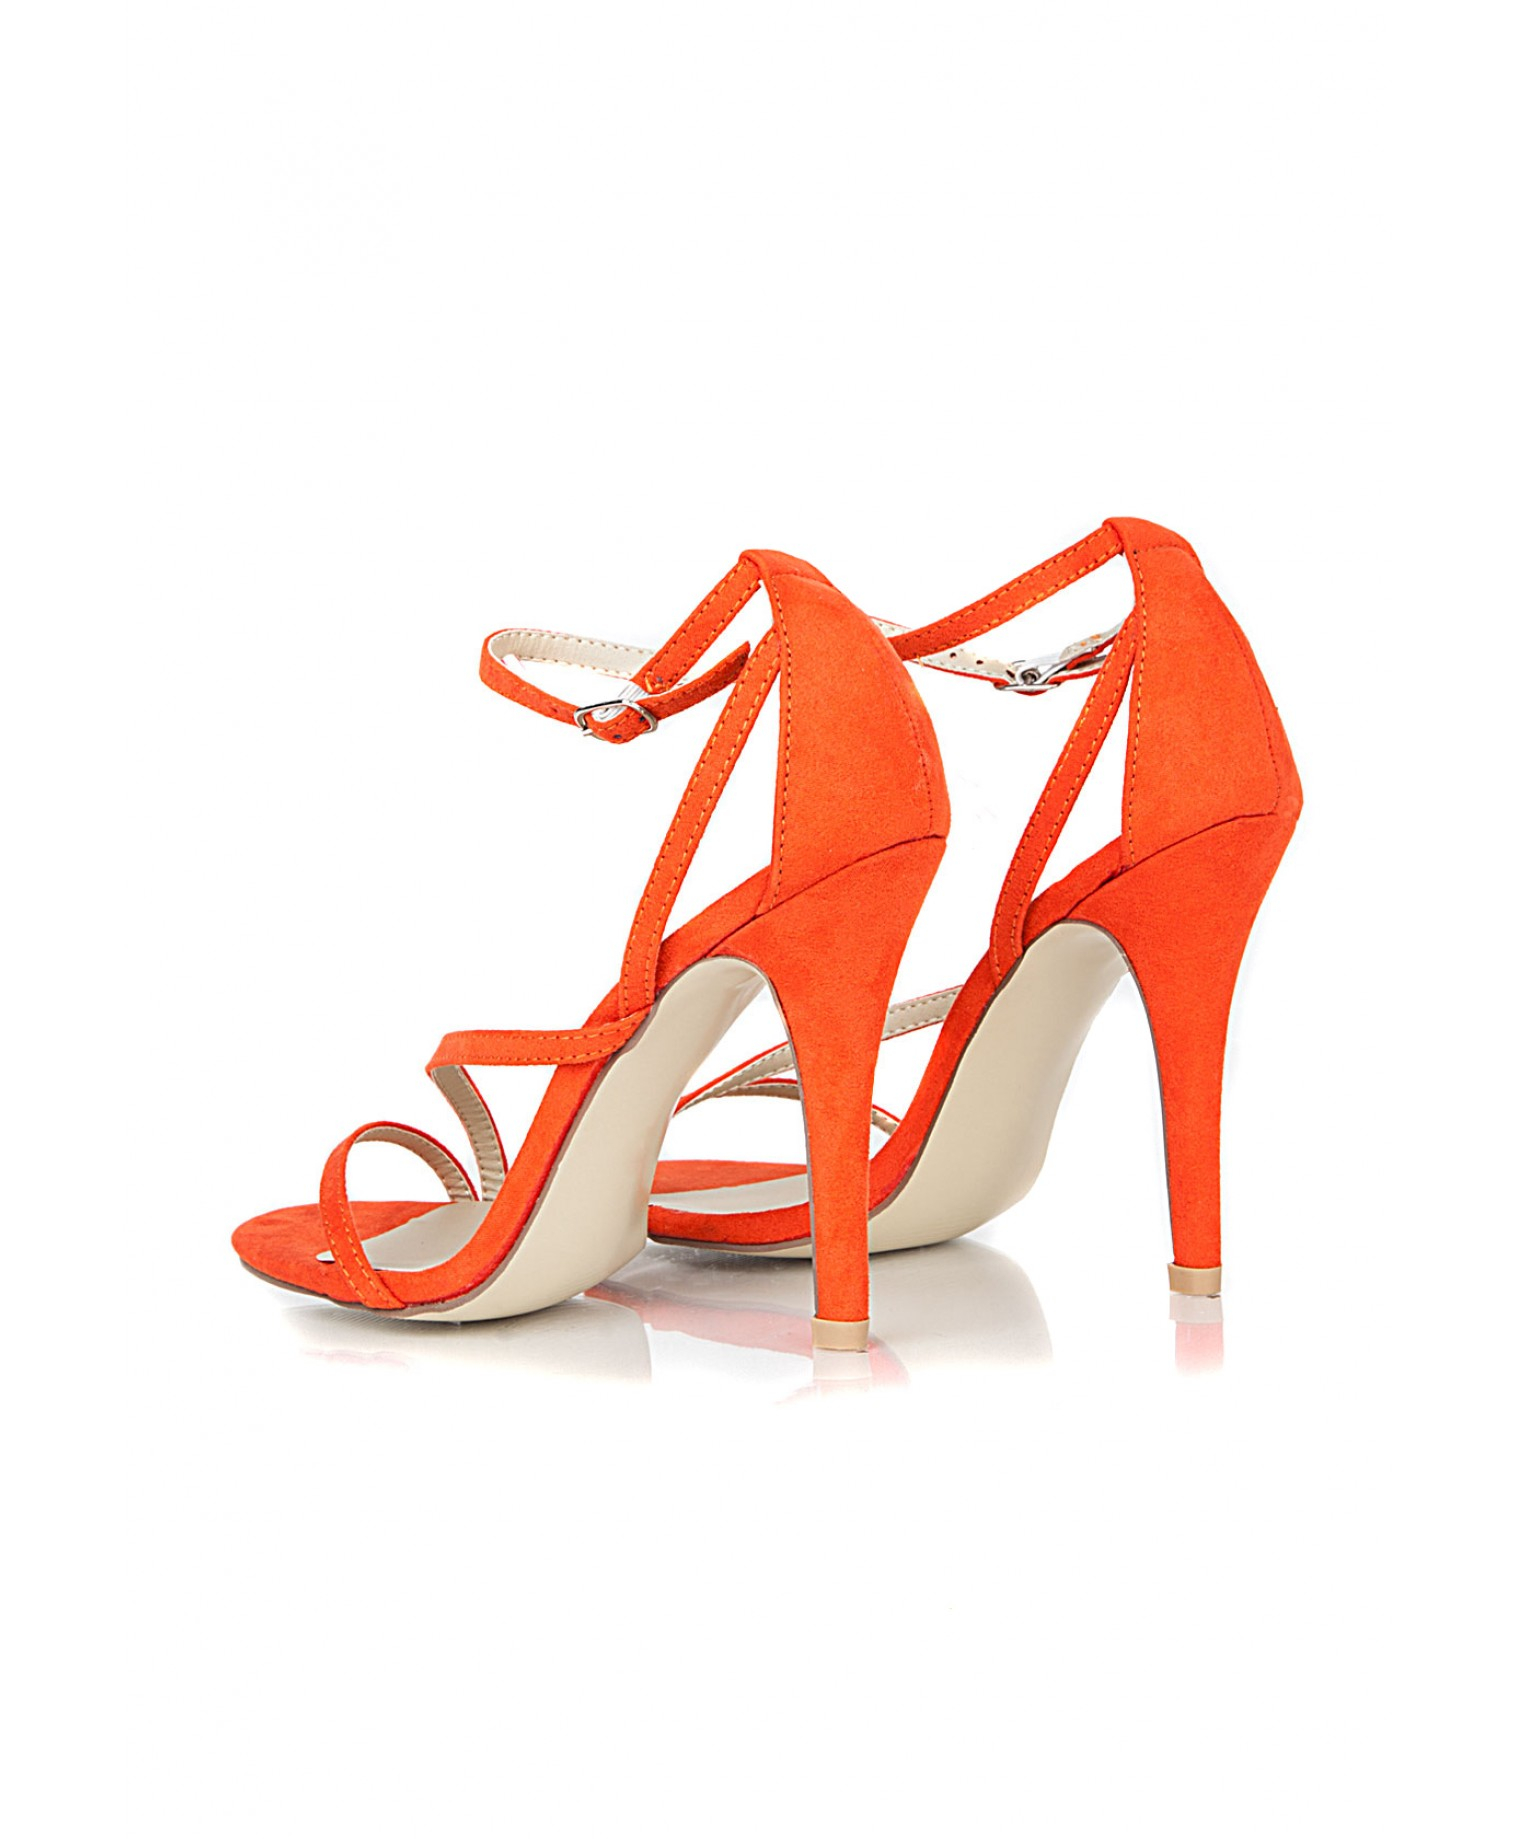 Missguided Nana Faux Suede Strappy Heels in Orange in Orange | Lyst